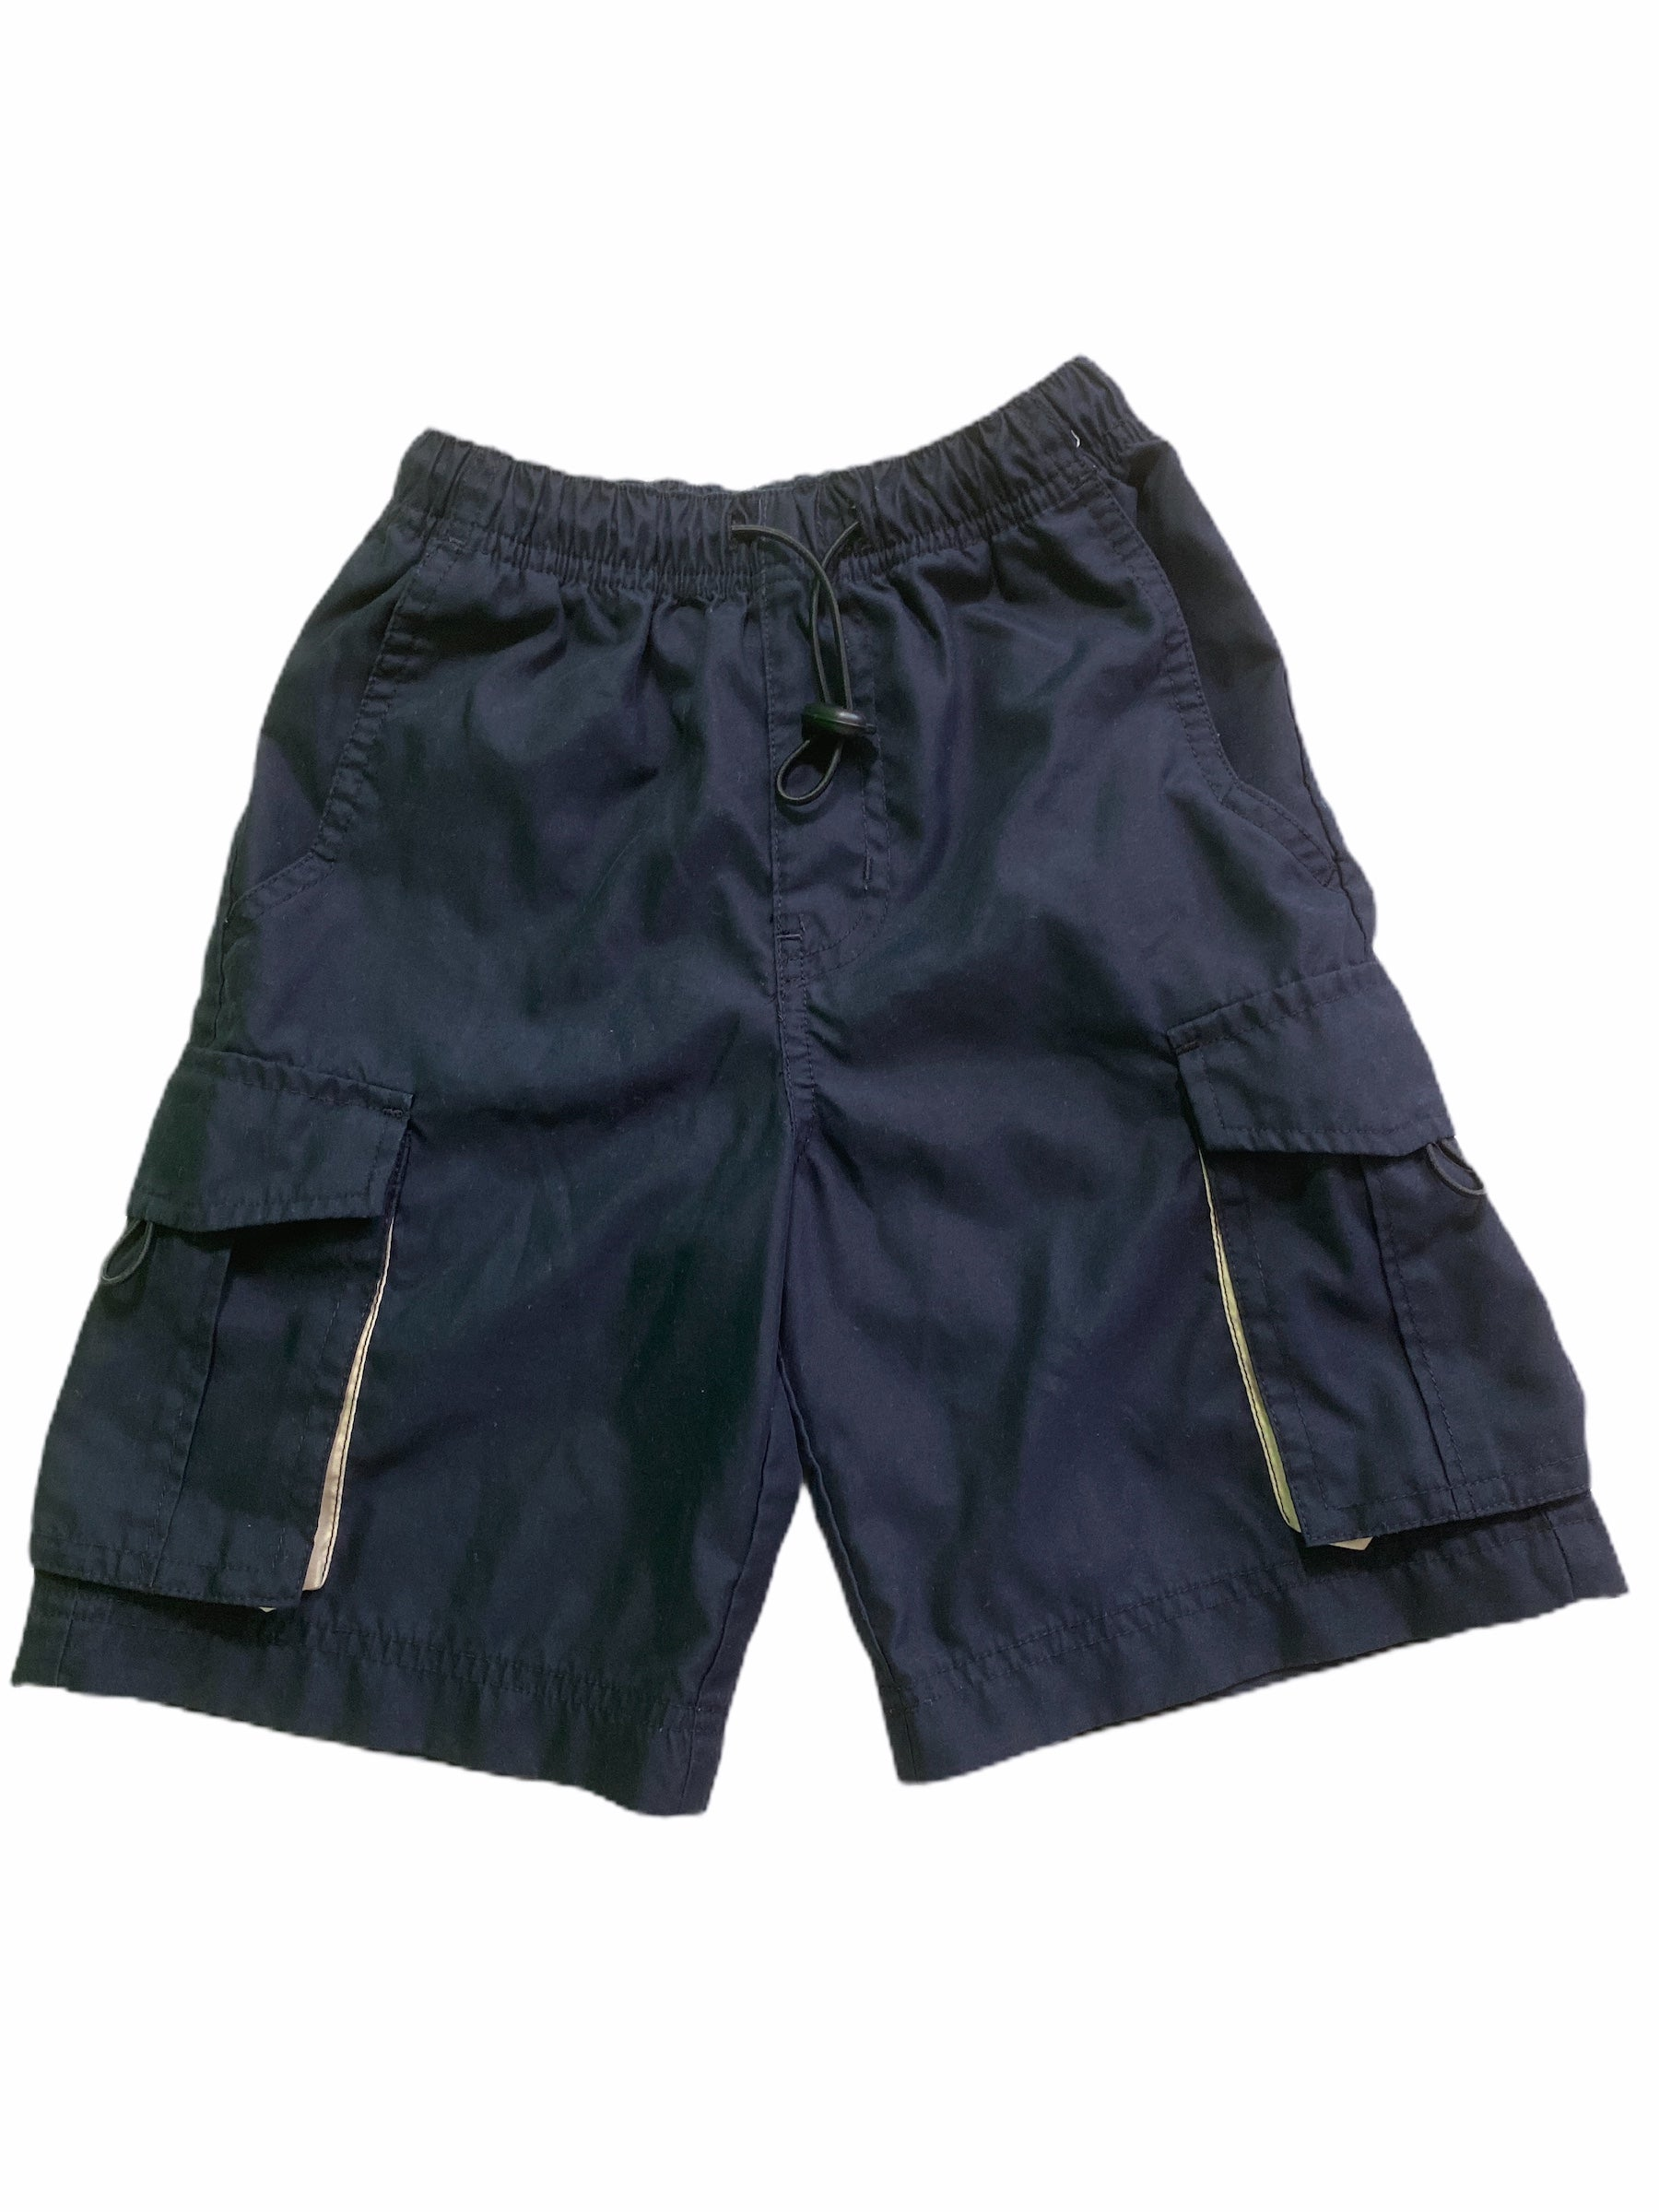 Did Too Navy Shorts (2T Boys)